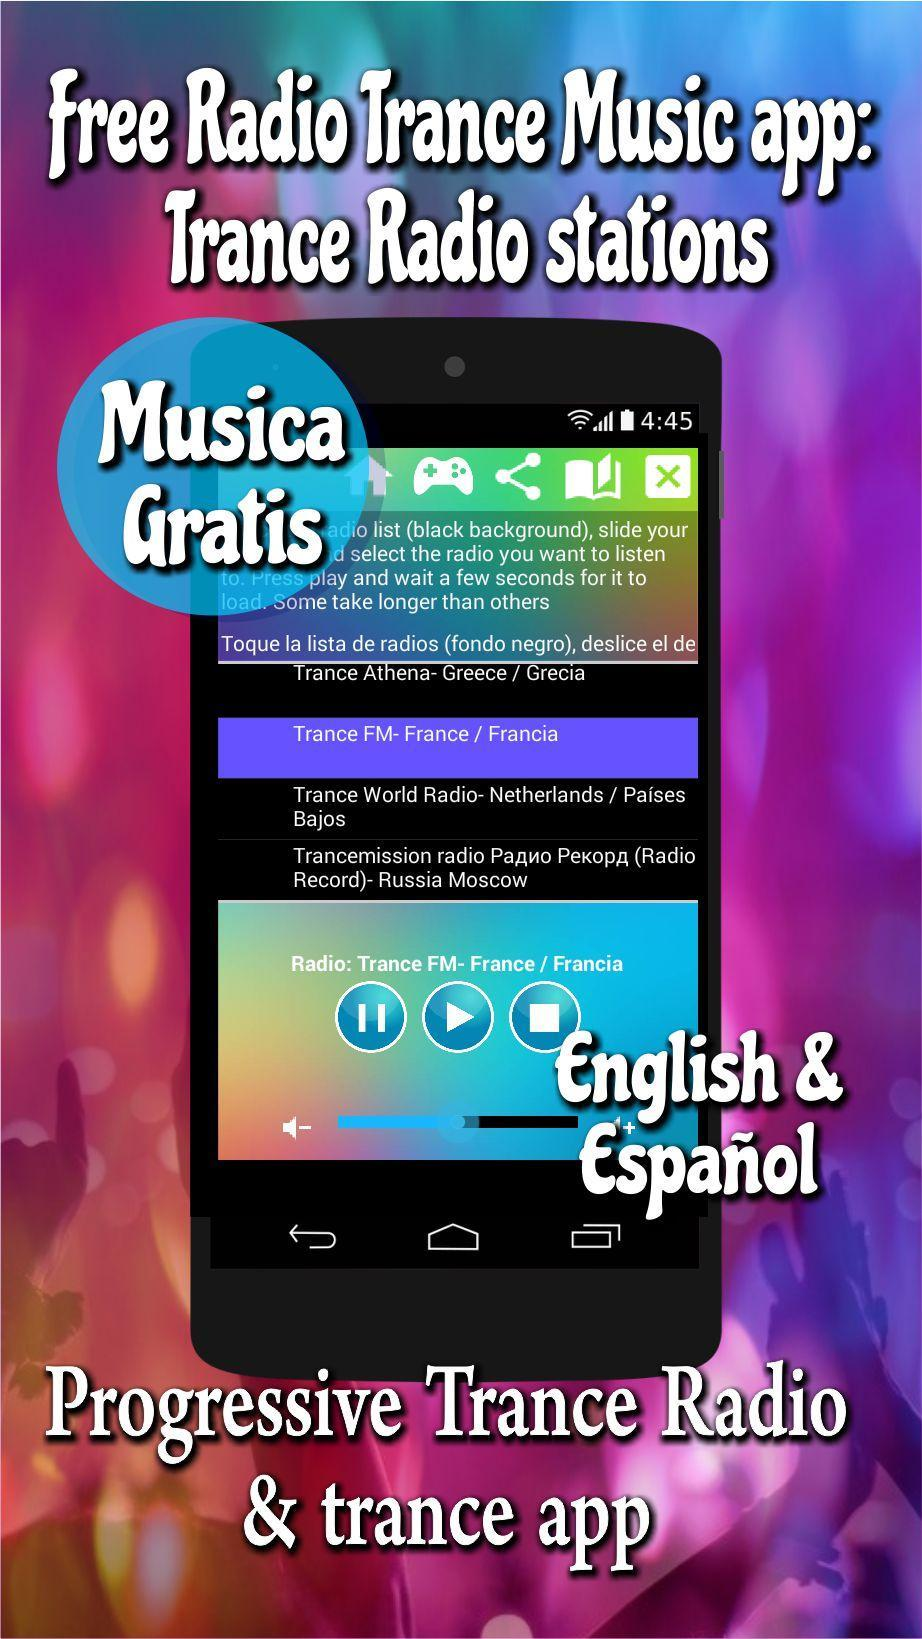 Free Radio Trance Music app: trance radio stations for Android - APK